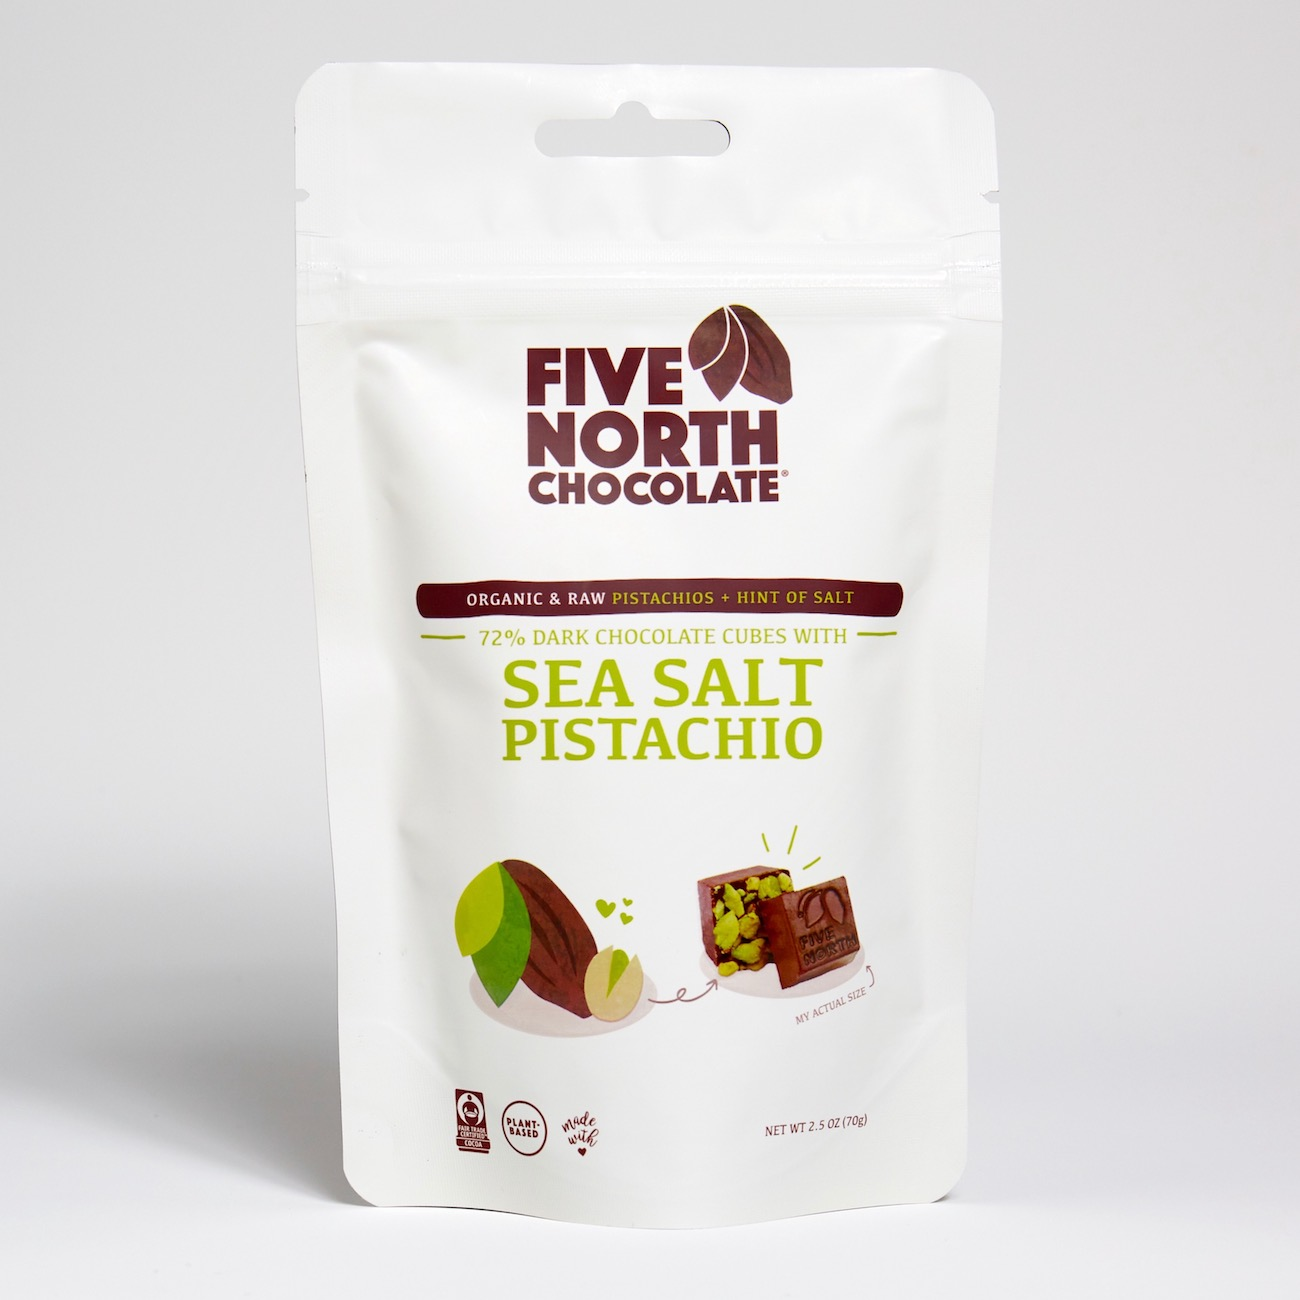 Pistachio Sea Salt Chocolates